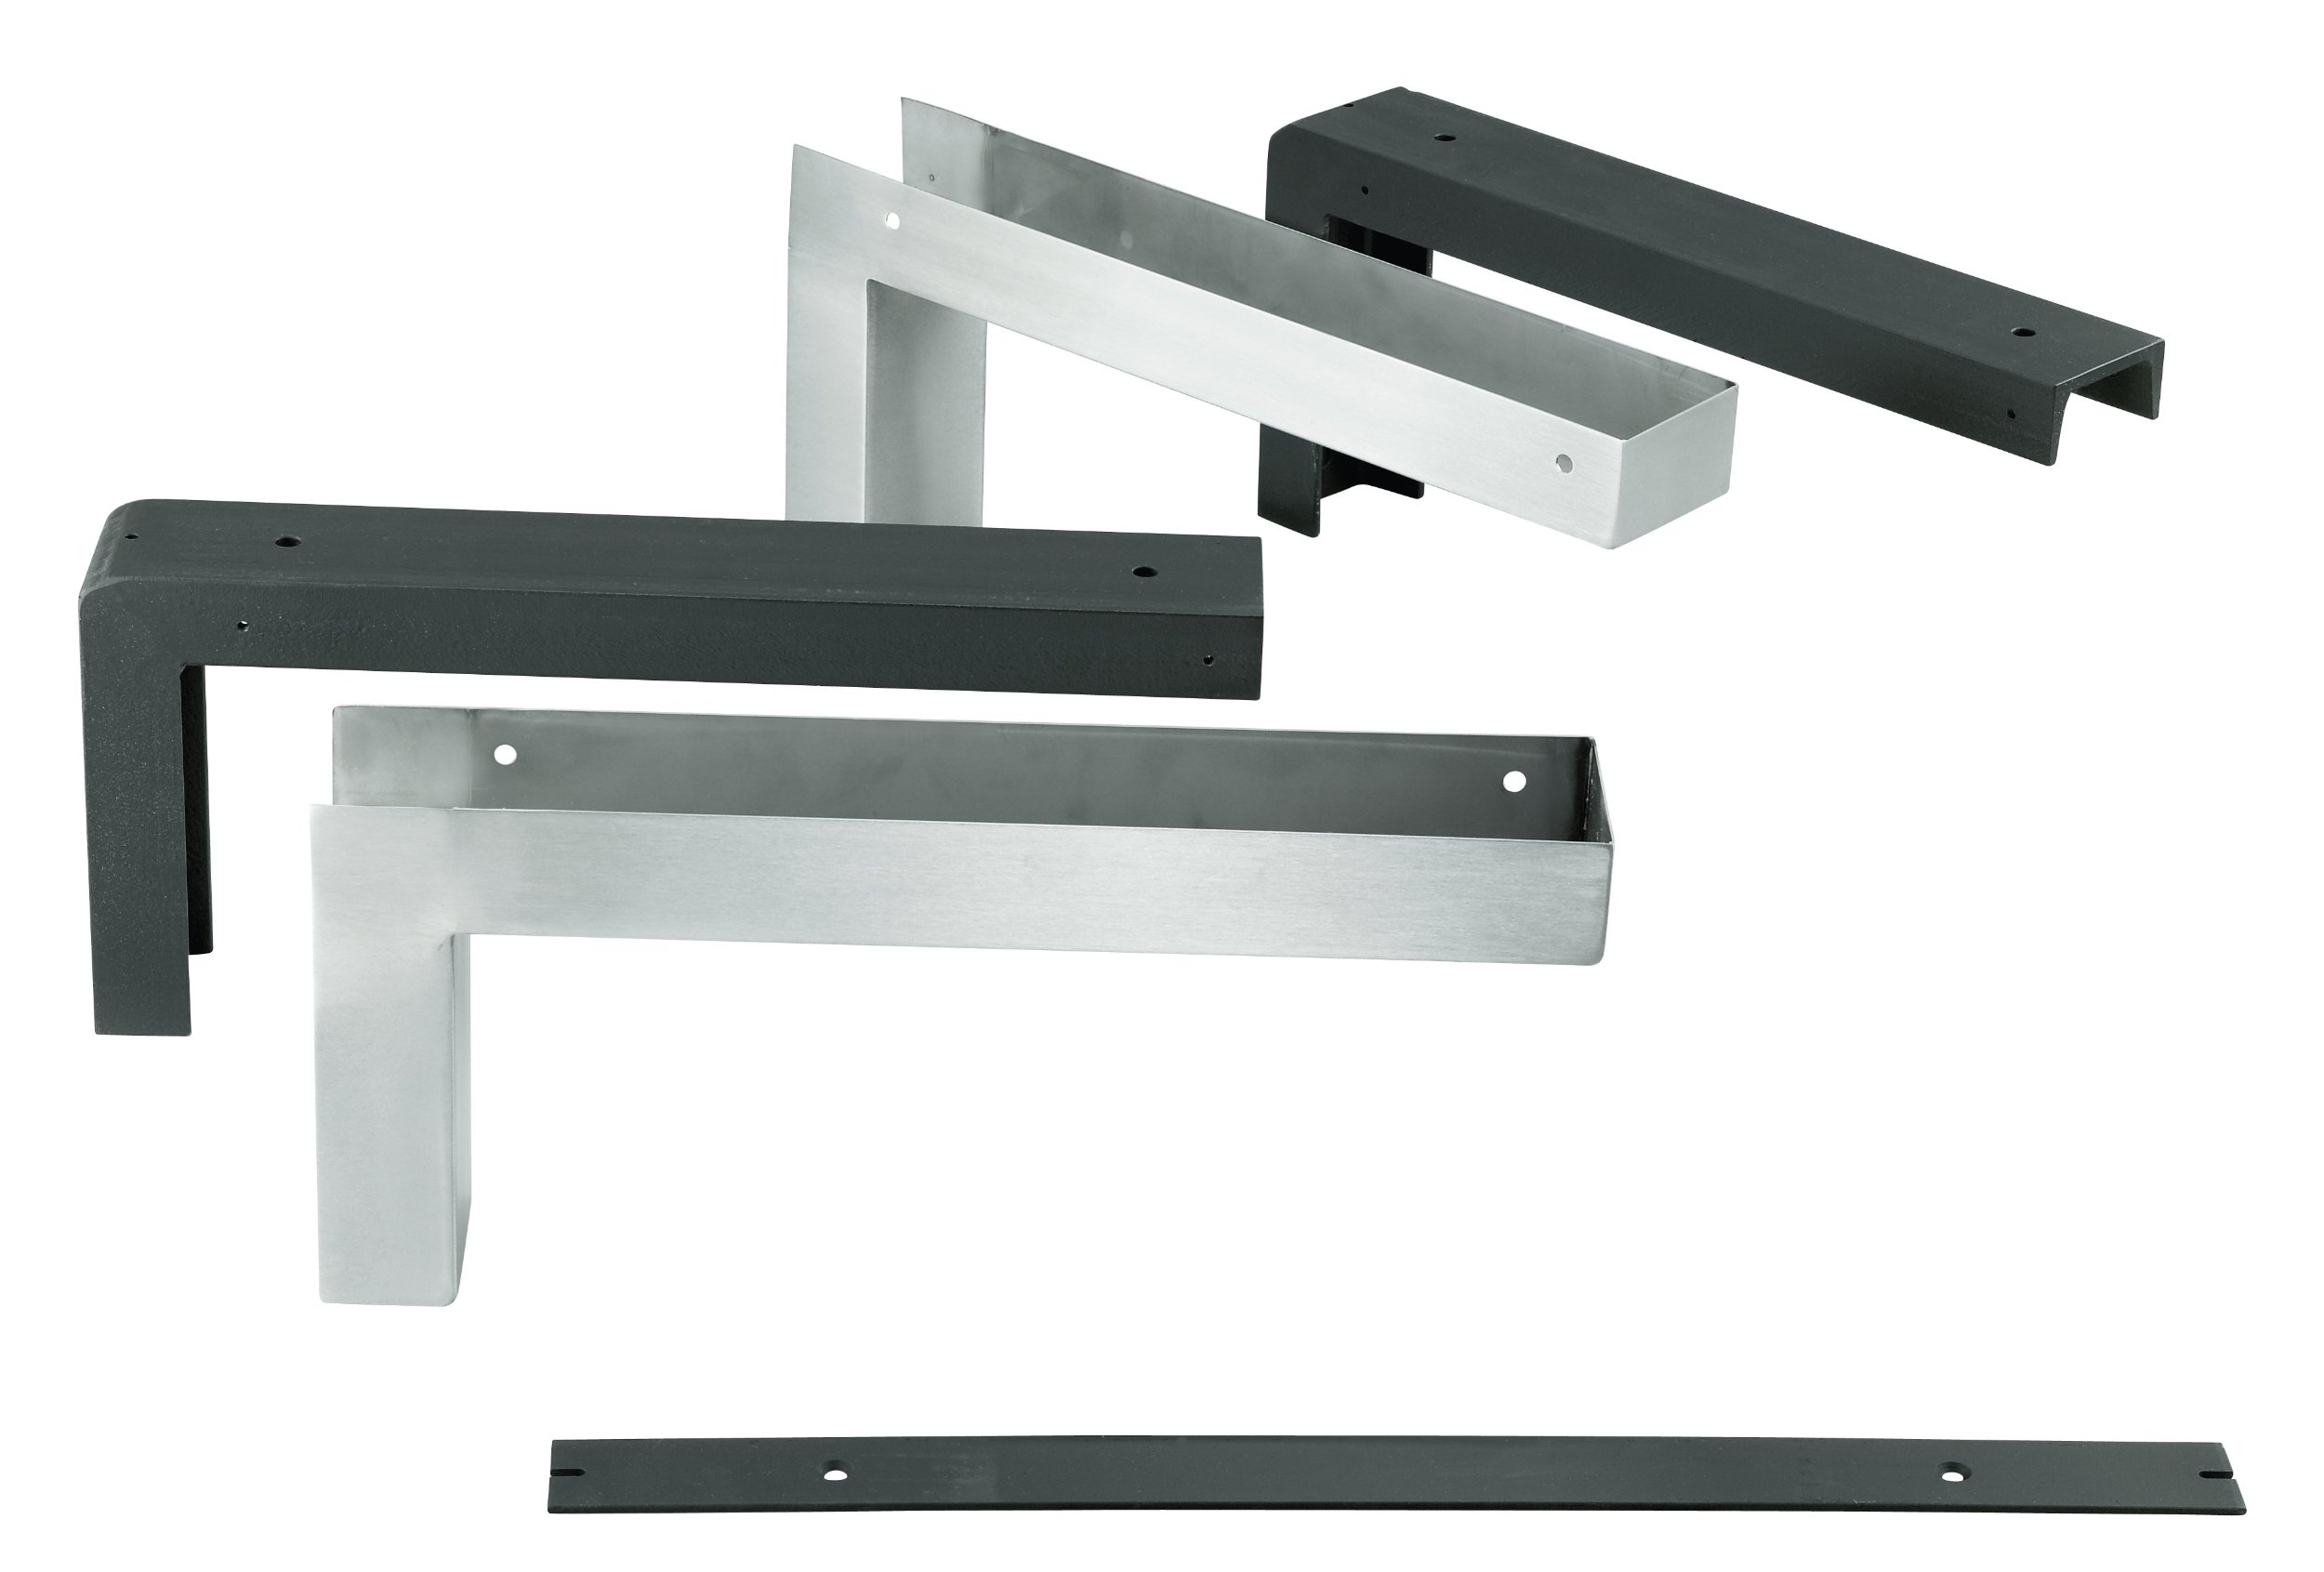 KOHLER K-9583-NA Bathroom Sink Bracket Kit by Kohler